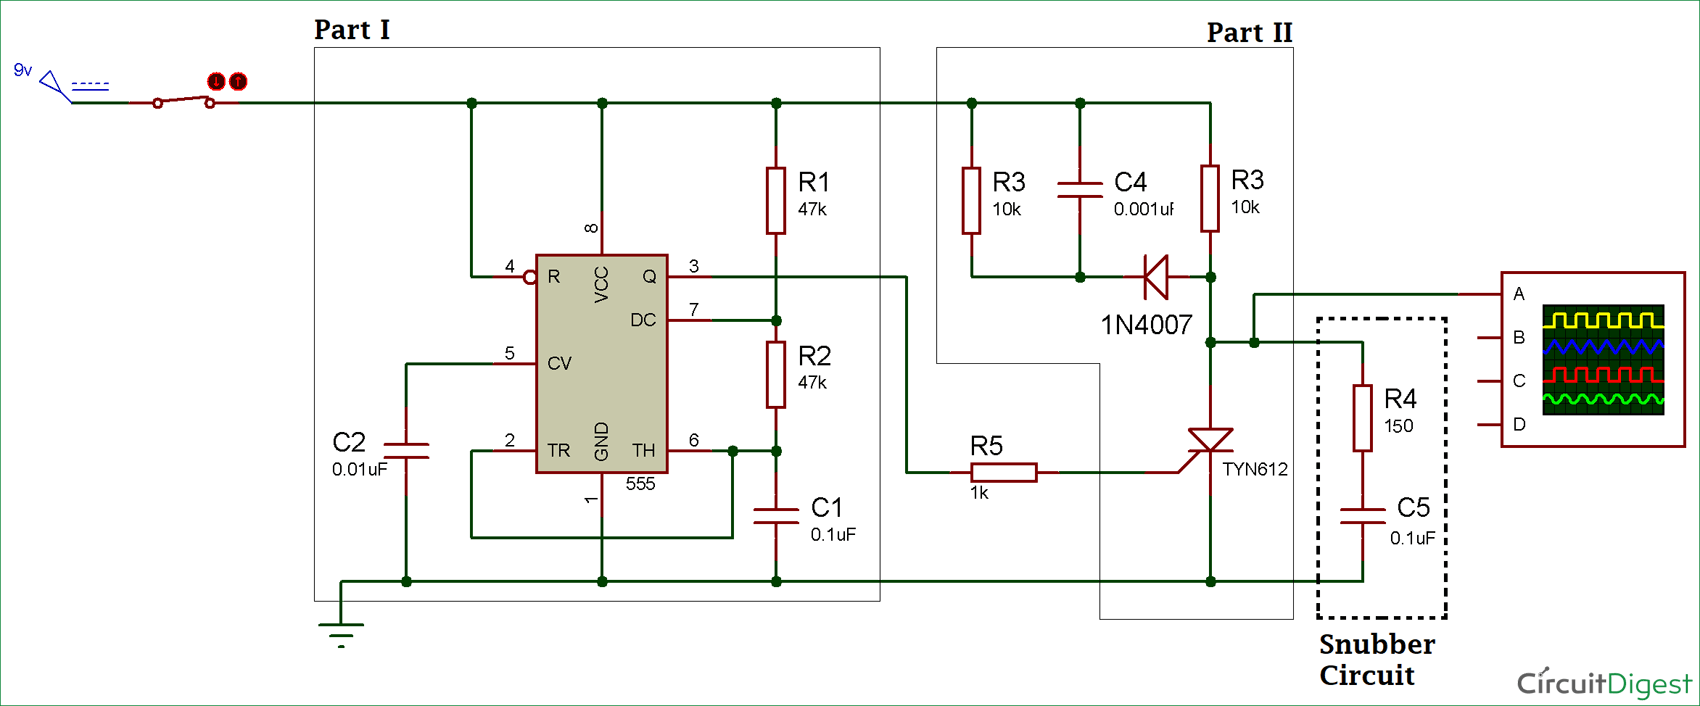 thyristor switching circuit diagram using snubber electronica